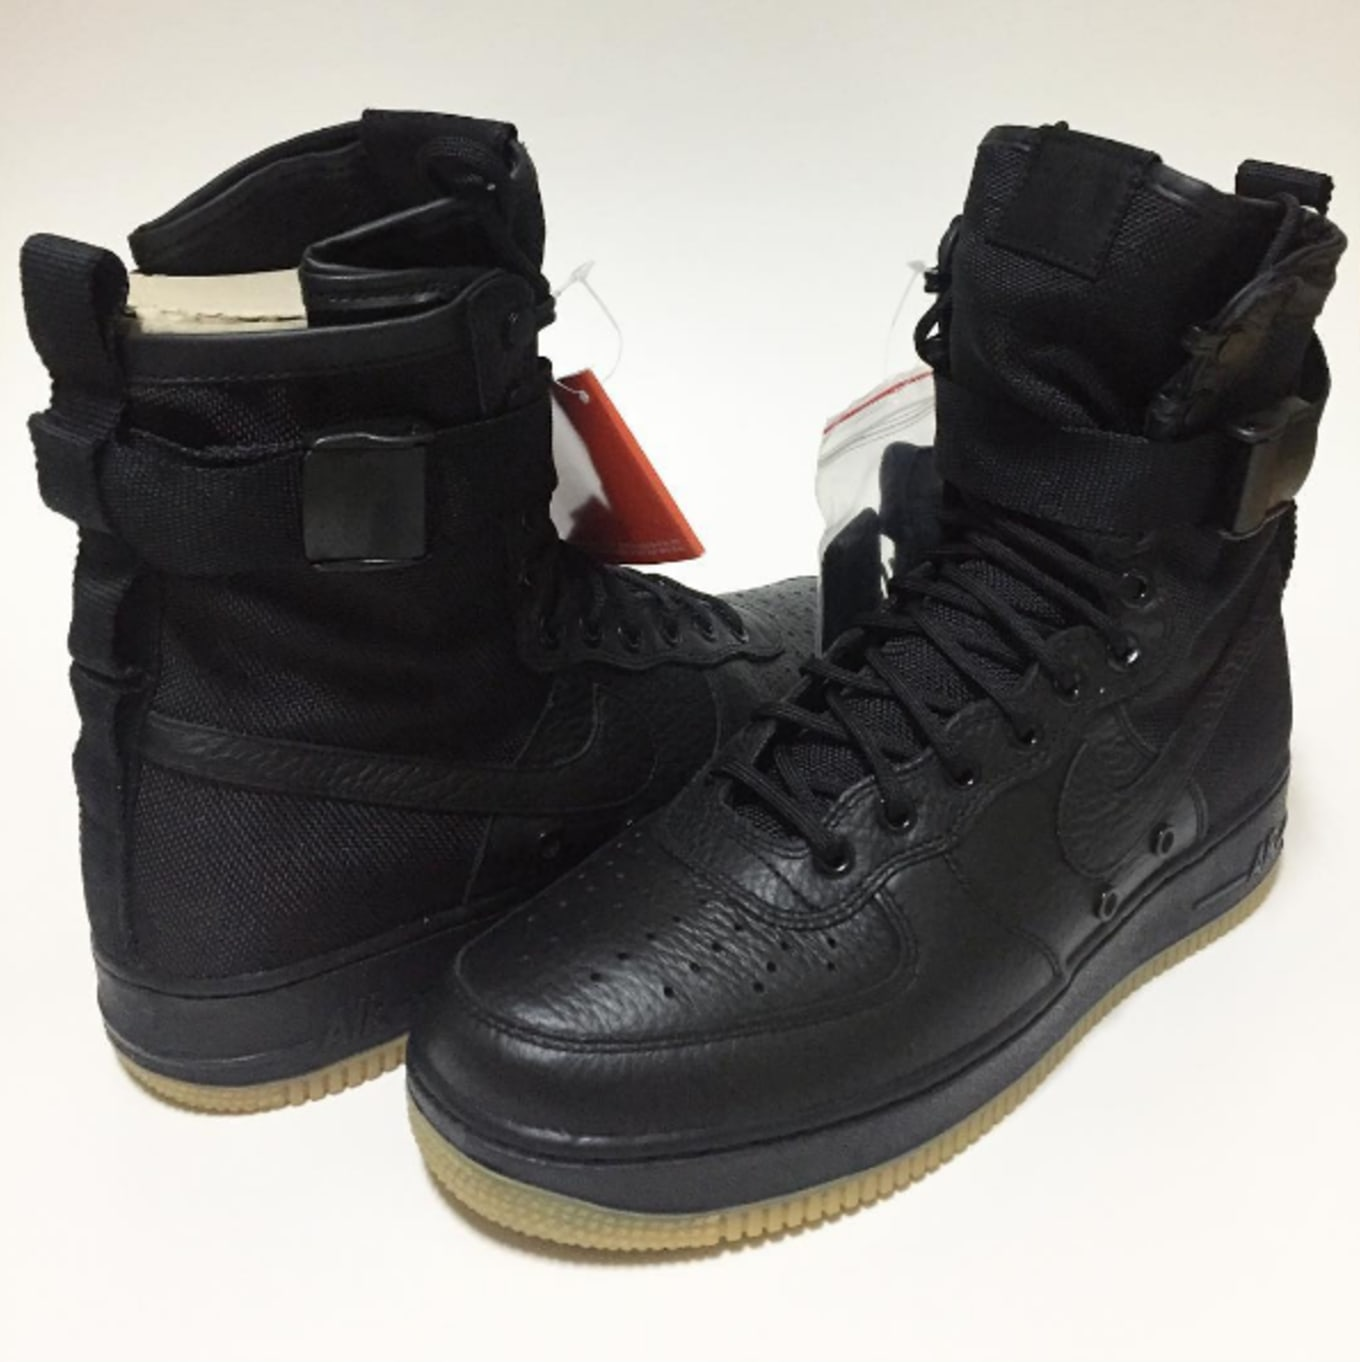 91b2d45e584f4 Another  Black Gum  Nike Special Field Air Force 1 is Releasing